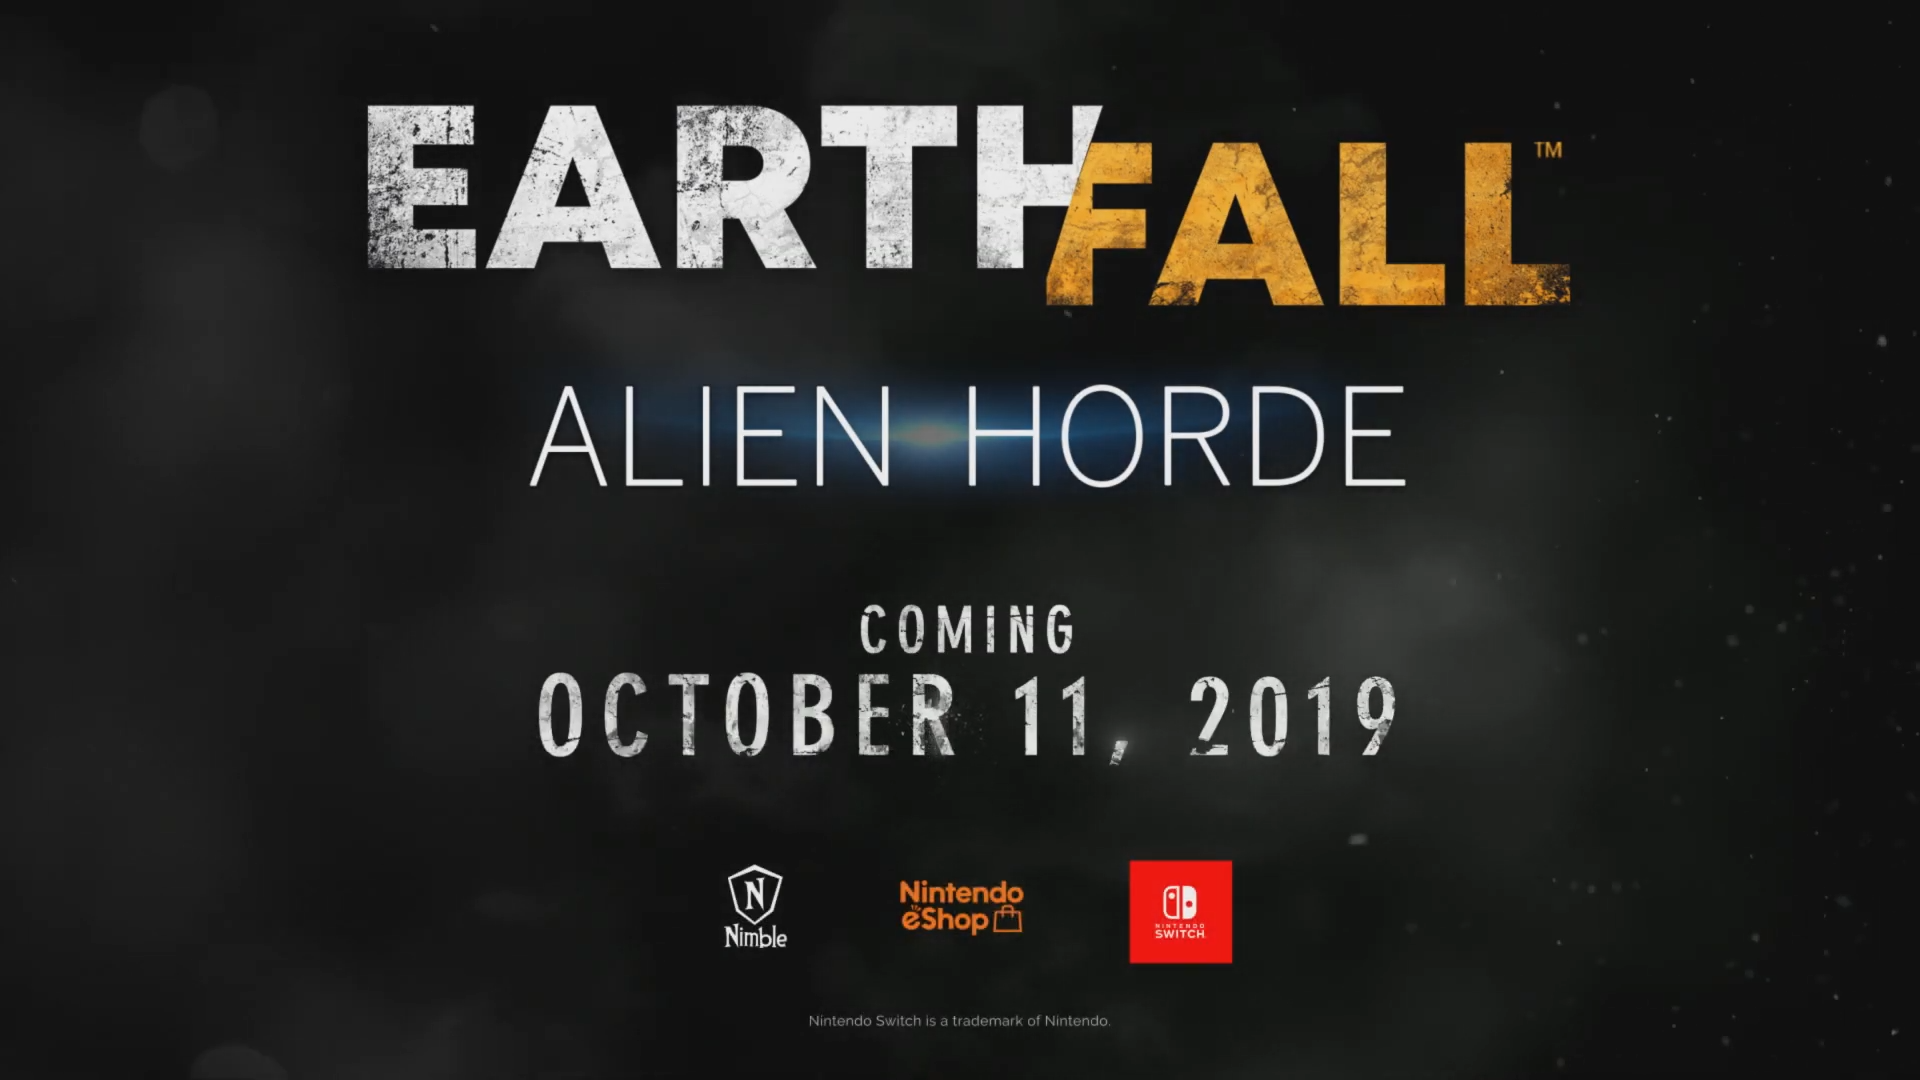 Earthfall: Alien Horde announced for Switch, launching October 11th